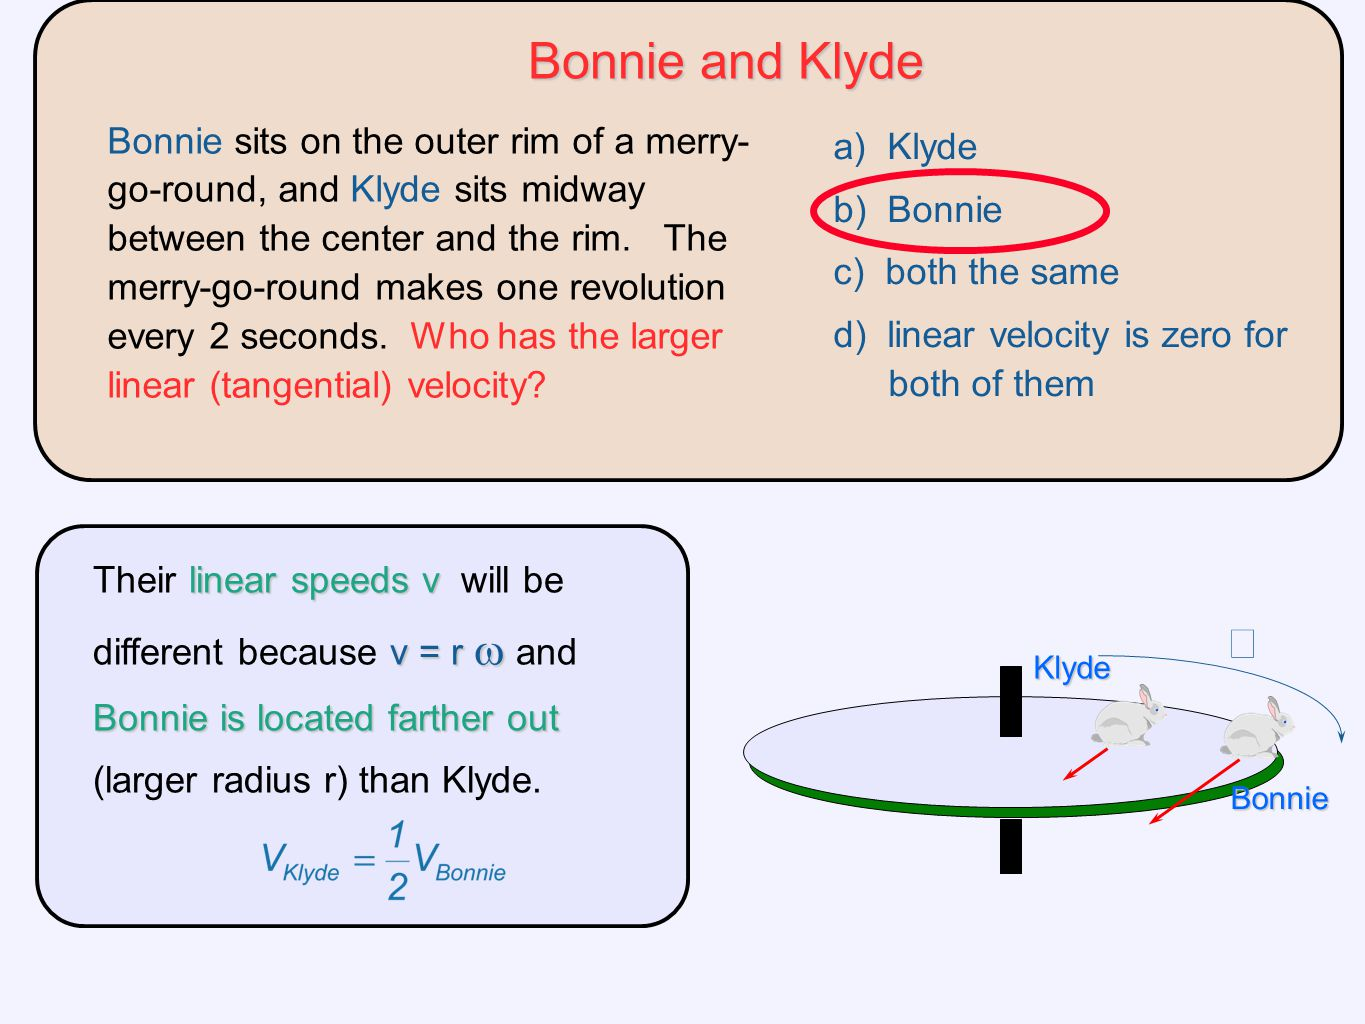 Bonnie and Klyde